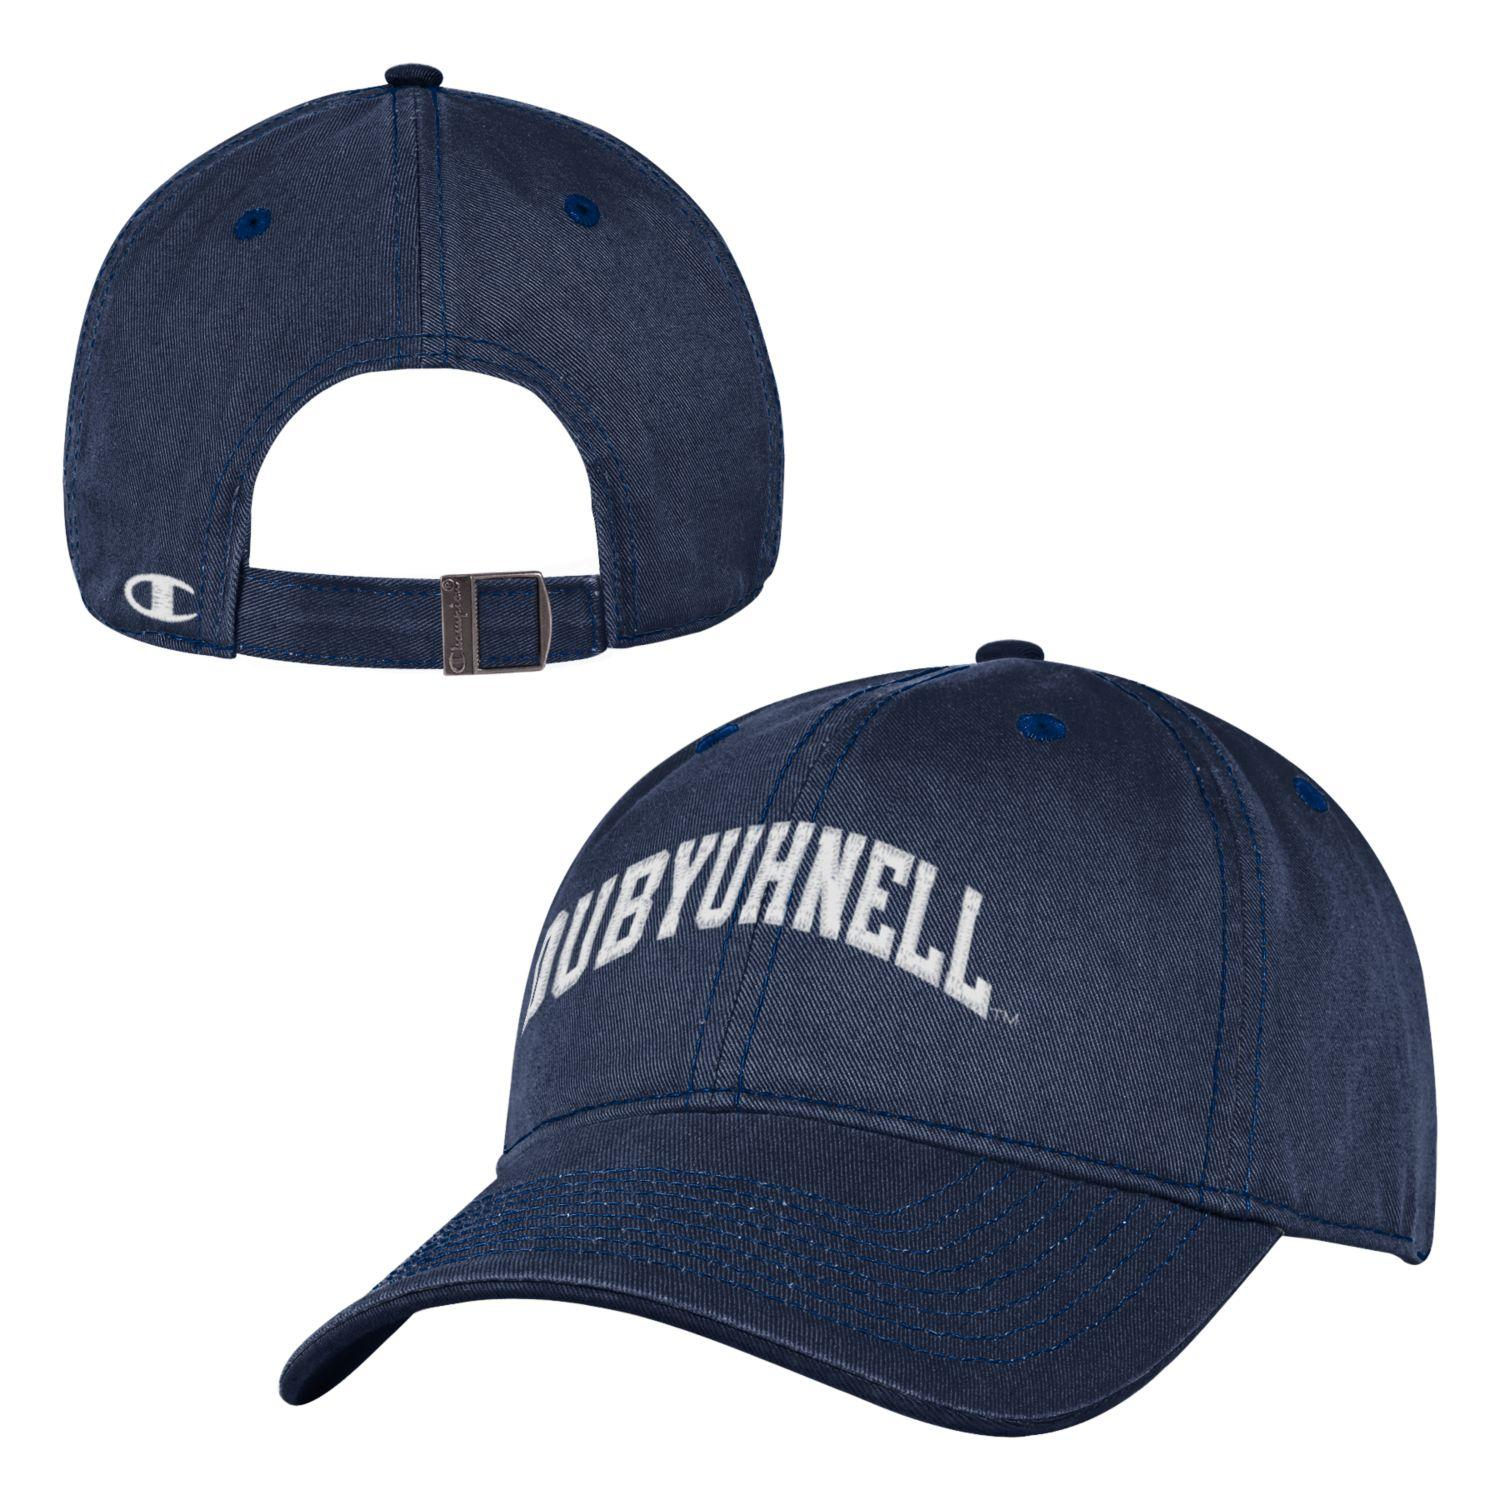 Champion Dubyuhnell Hat